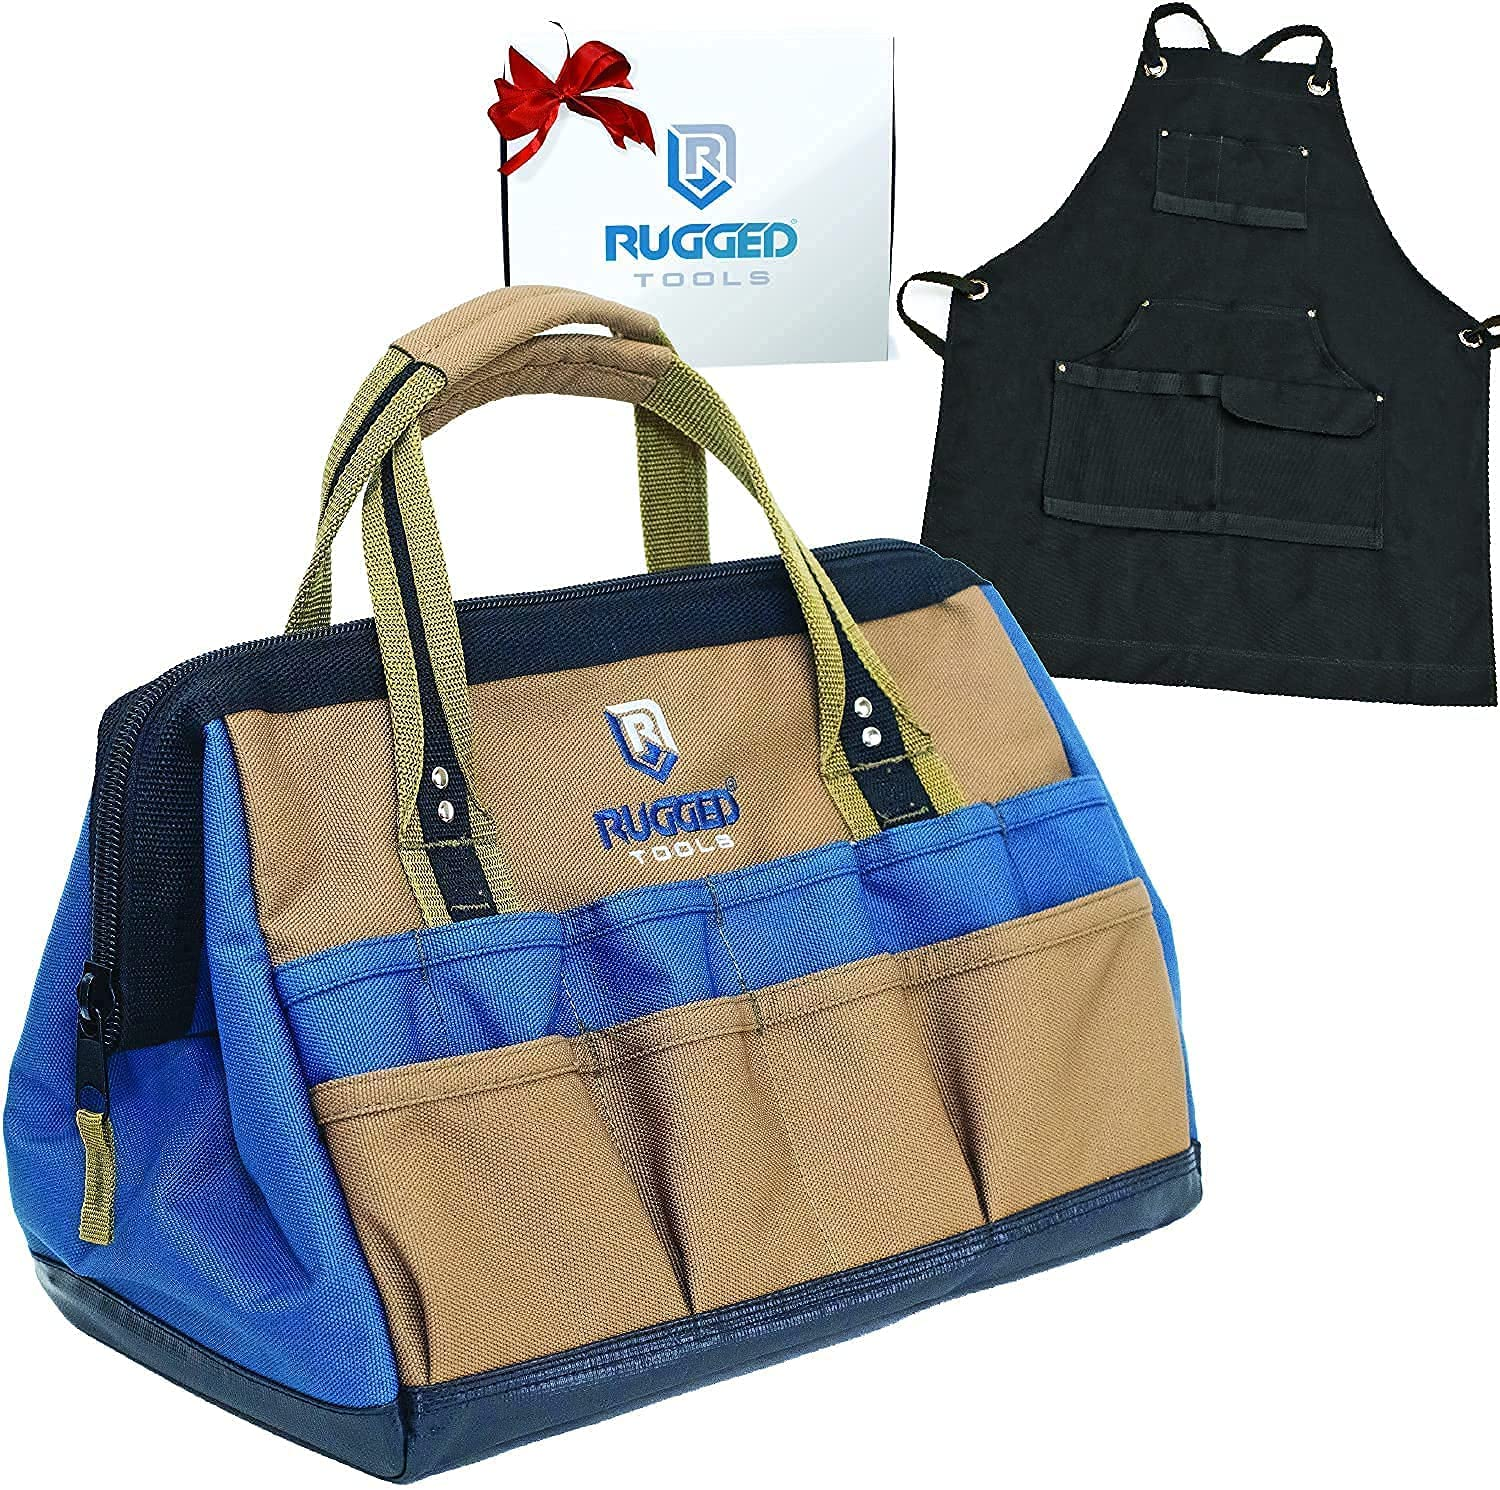 Rugged Tools Heavy-Duty Wide-Mouth Tool Bag + Canvas Work Apron